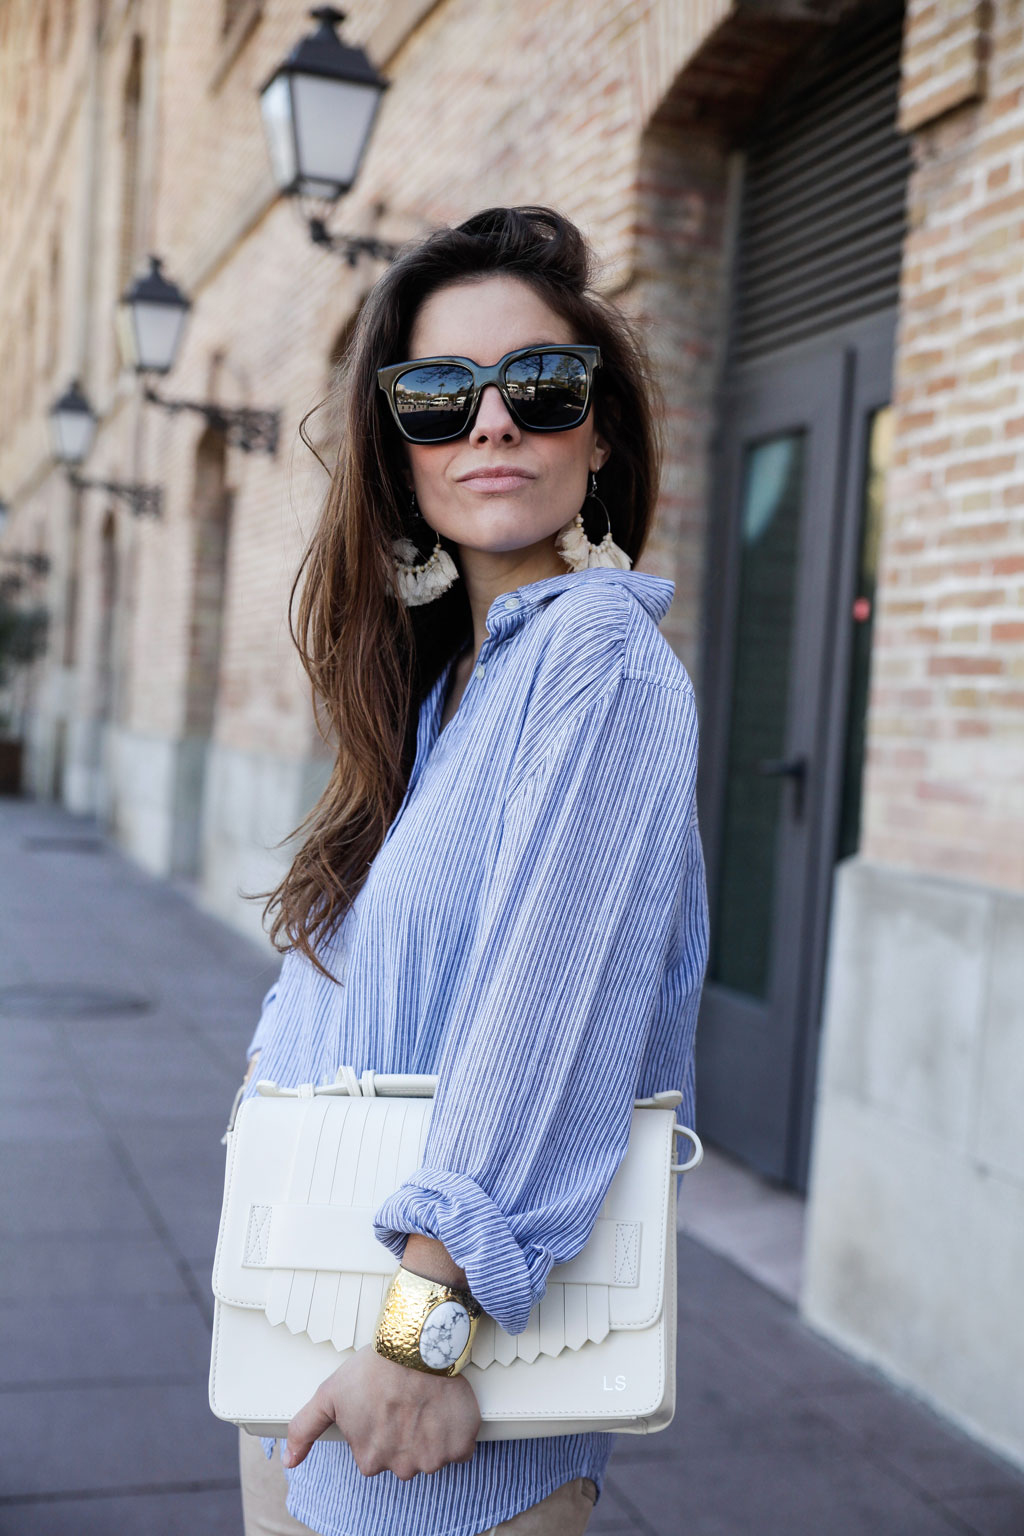 09_camisa_de_rayas_azules_para_primavera_estilo_sincerely_jules_theguestgirl_influencer_barcelona_the_guest_girl_laura_santolaria_fashion_blogger_content_creator_perpex_shoes